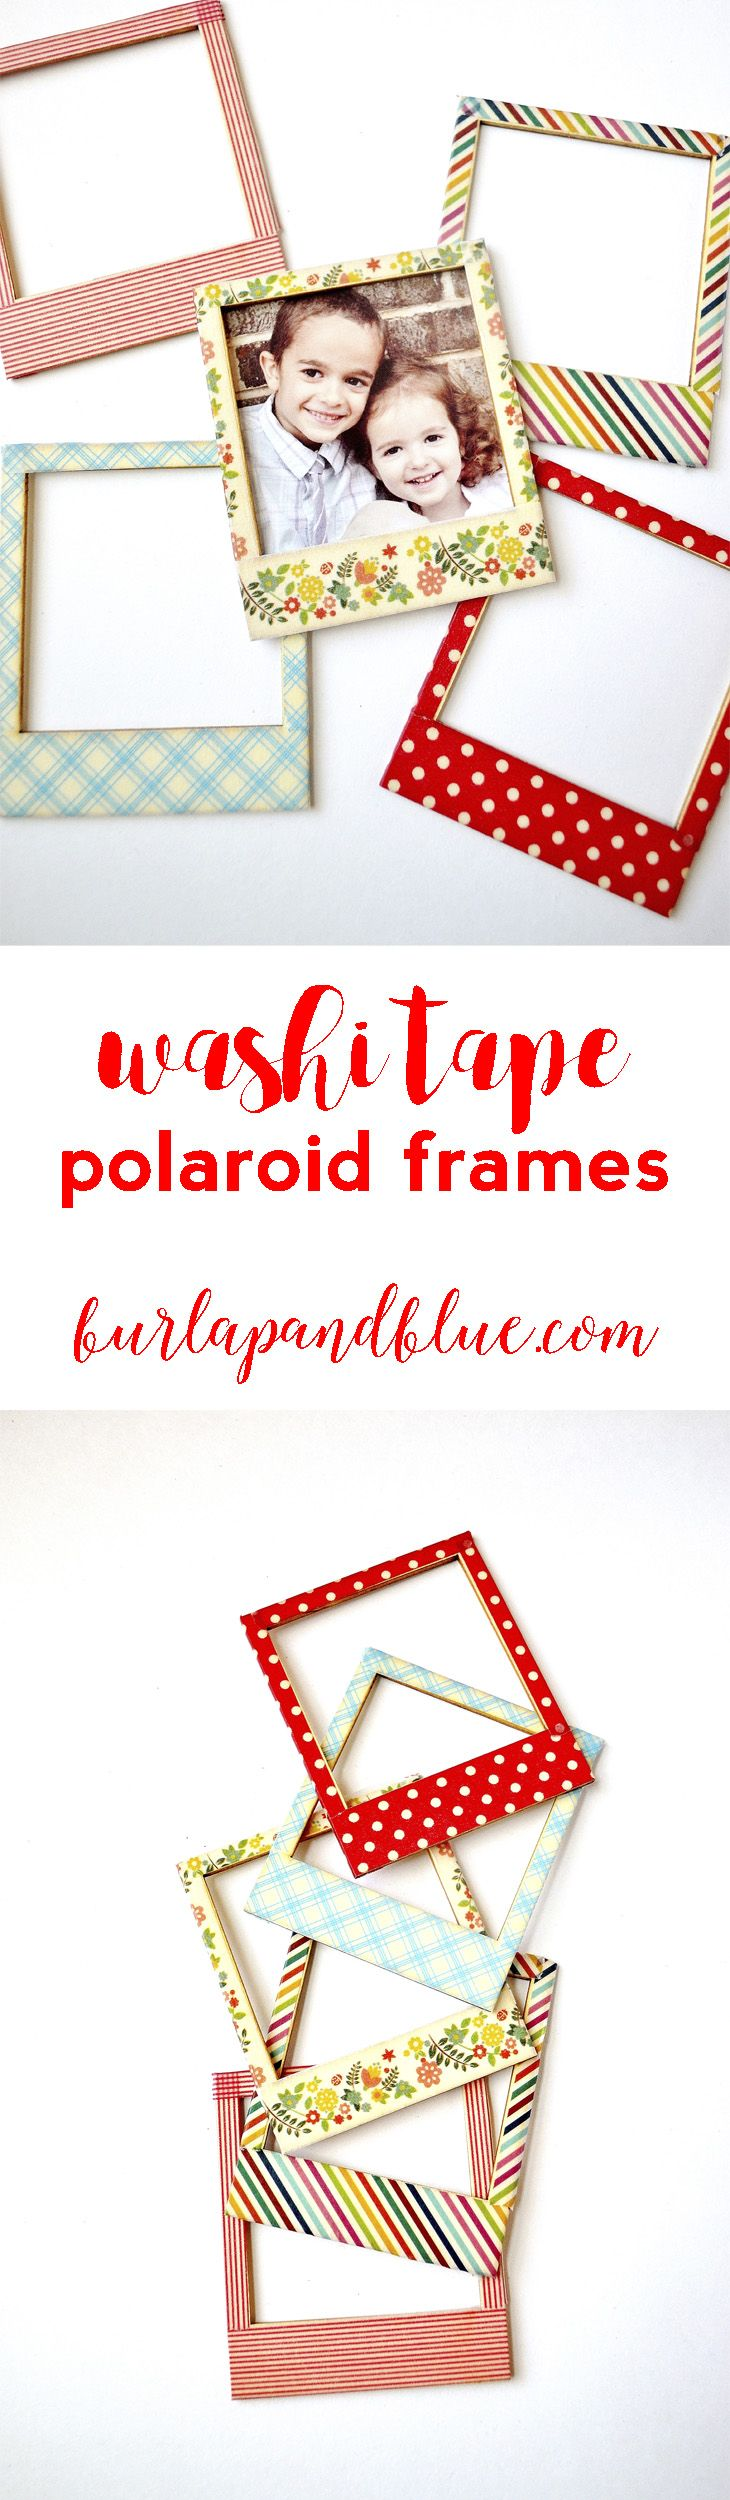 washi tape polaroid frames! an easy gift idea--just add a magnet to the back and include square photos for a fun gift!